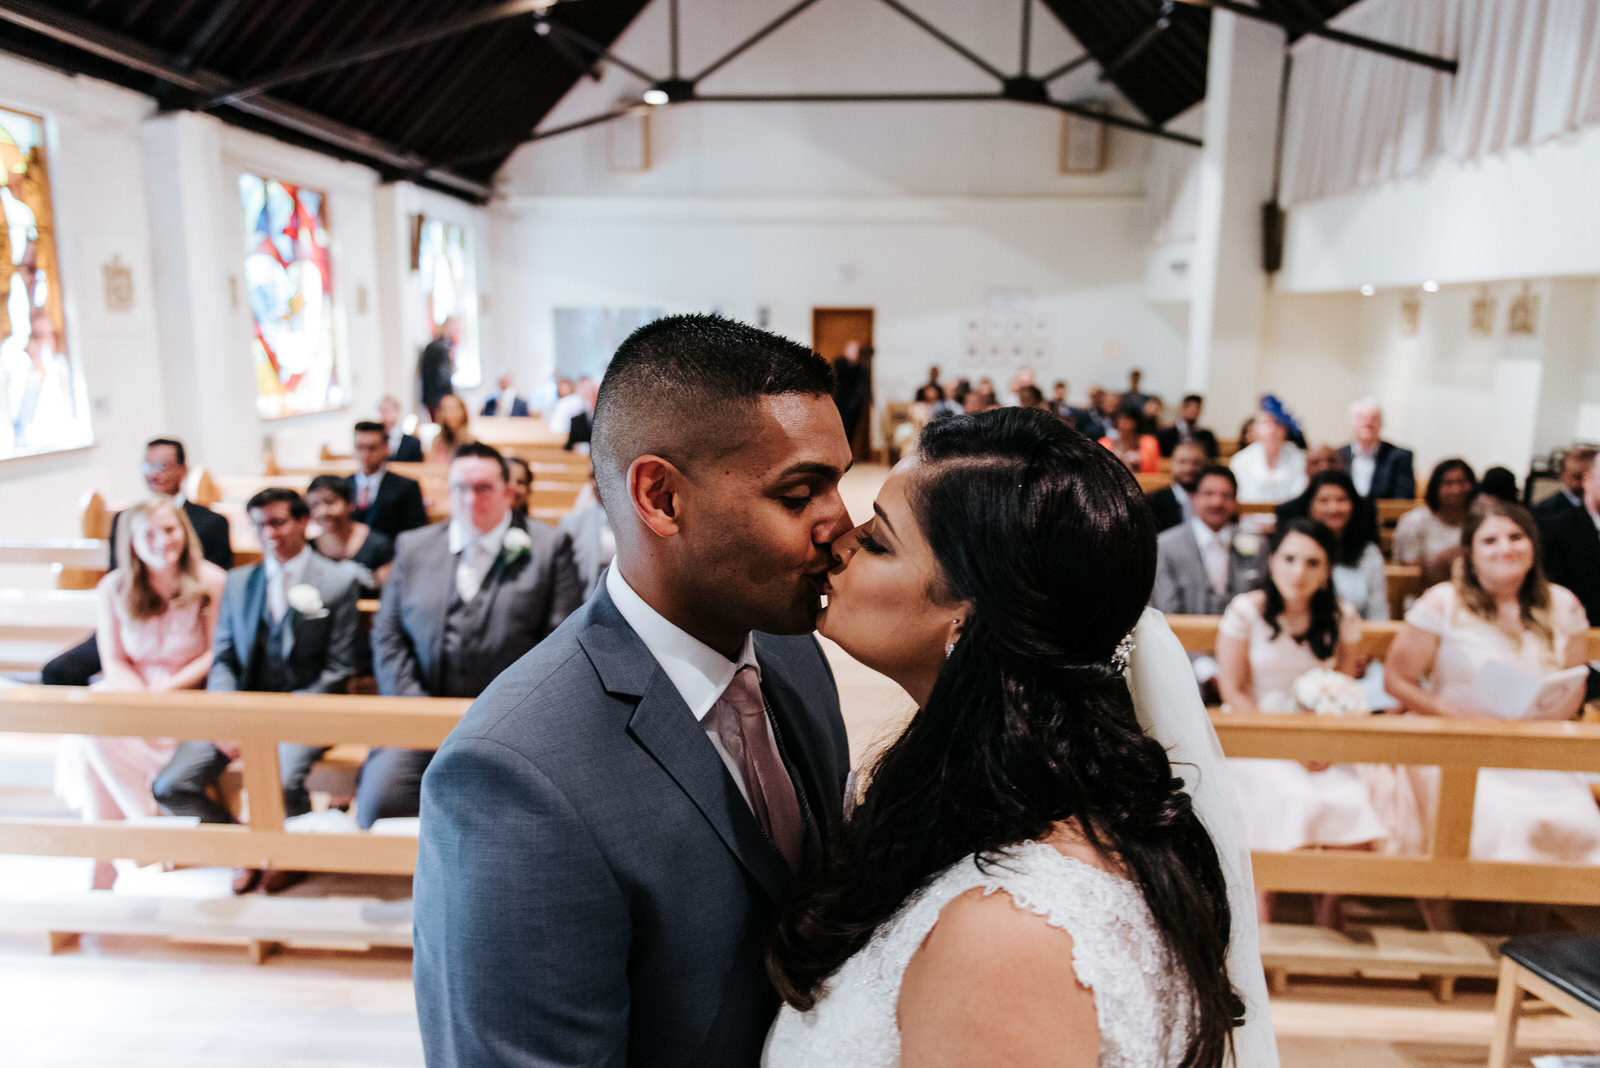 Bride and groom have first kiss during ceremony